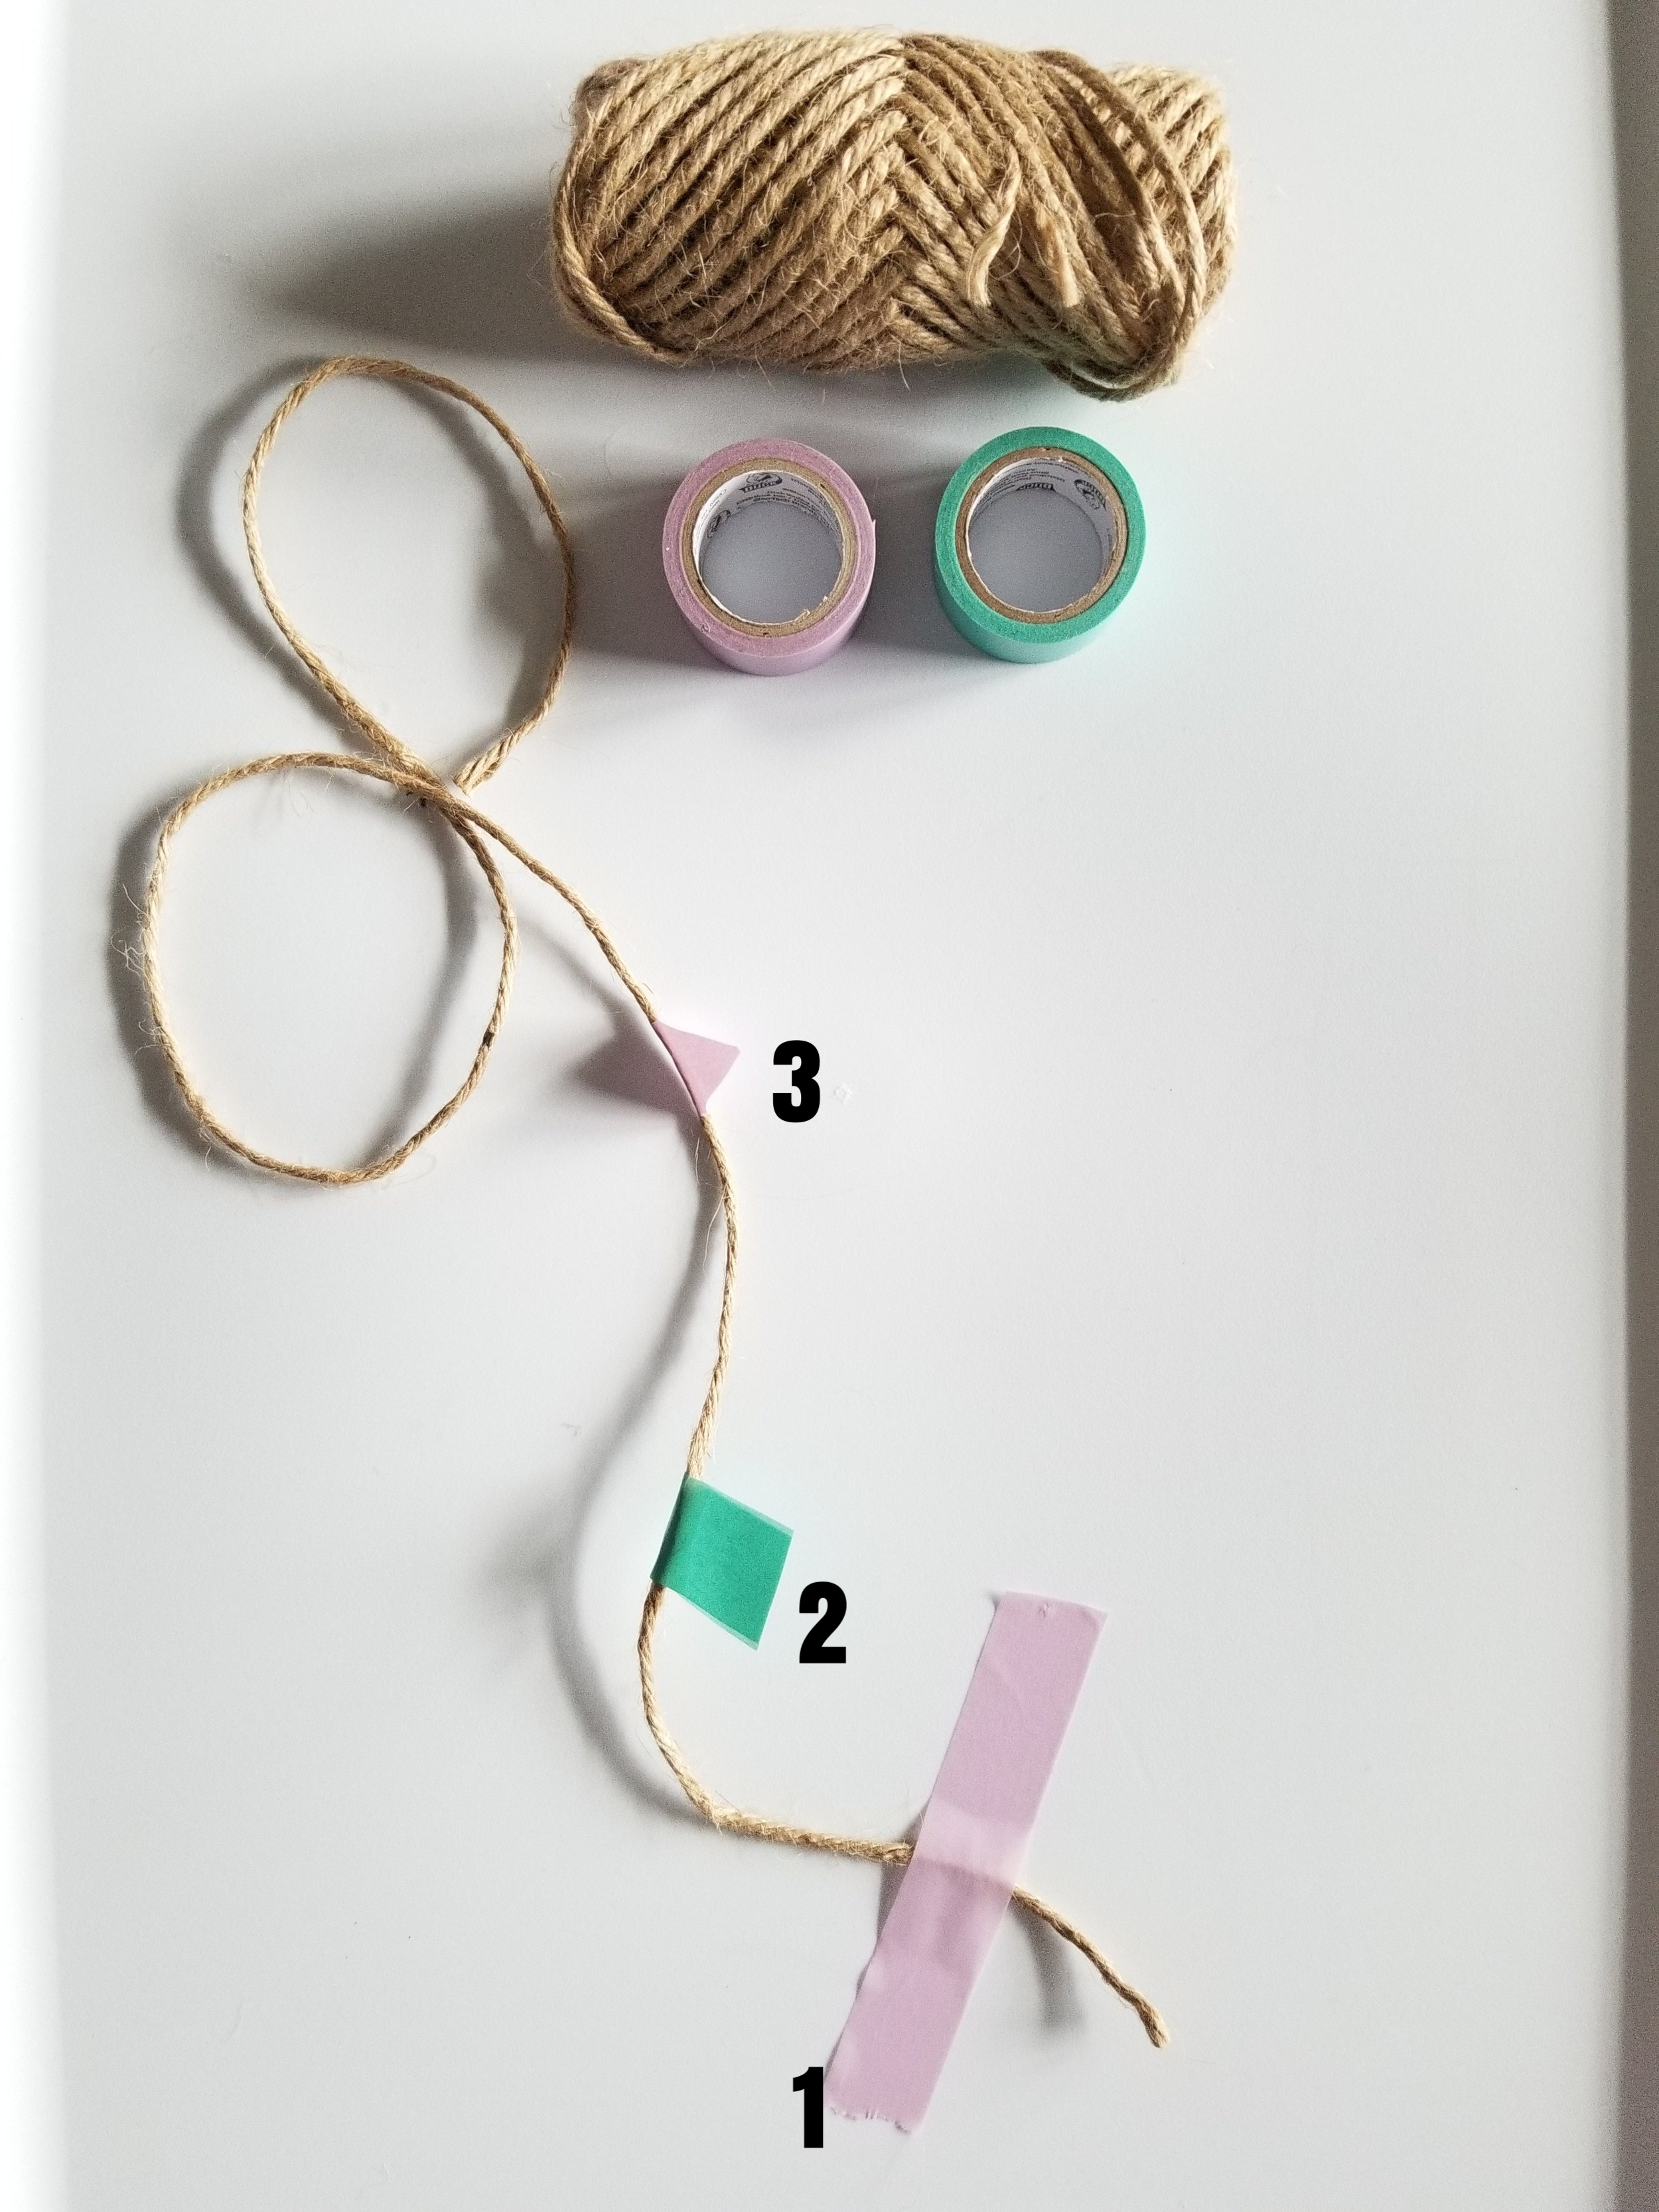 Steps to making the detailed string.